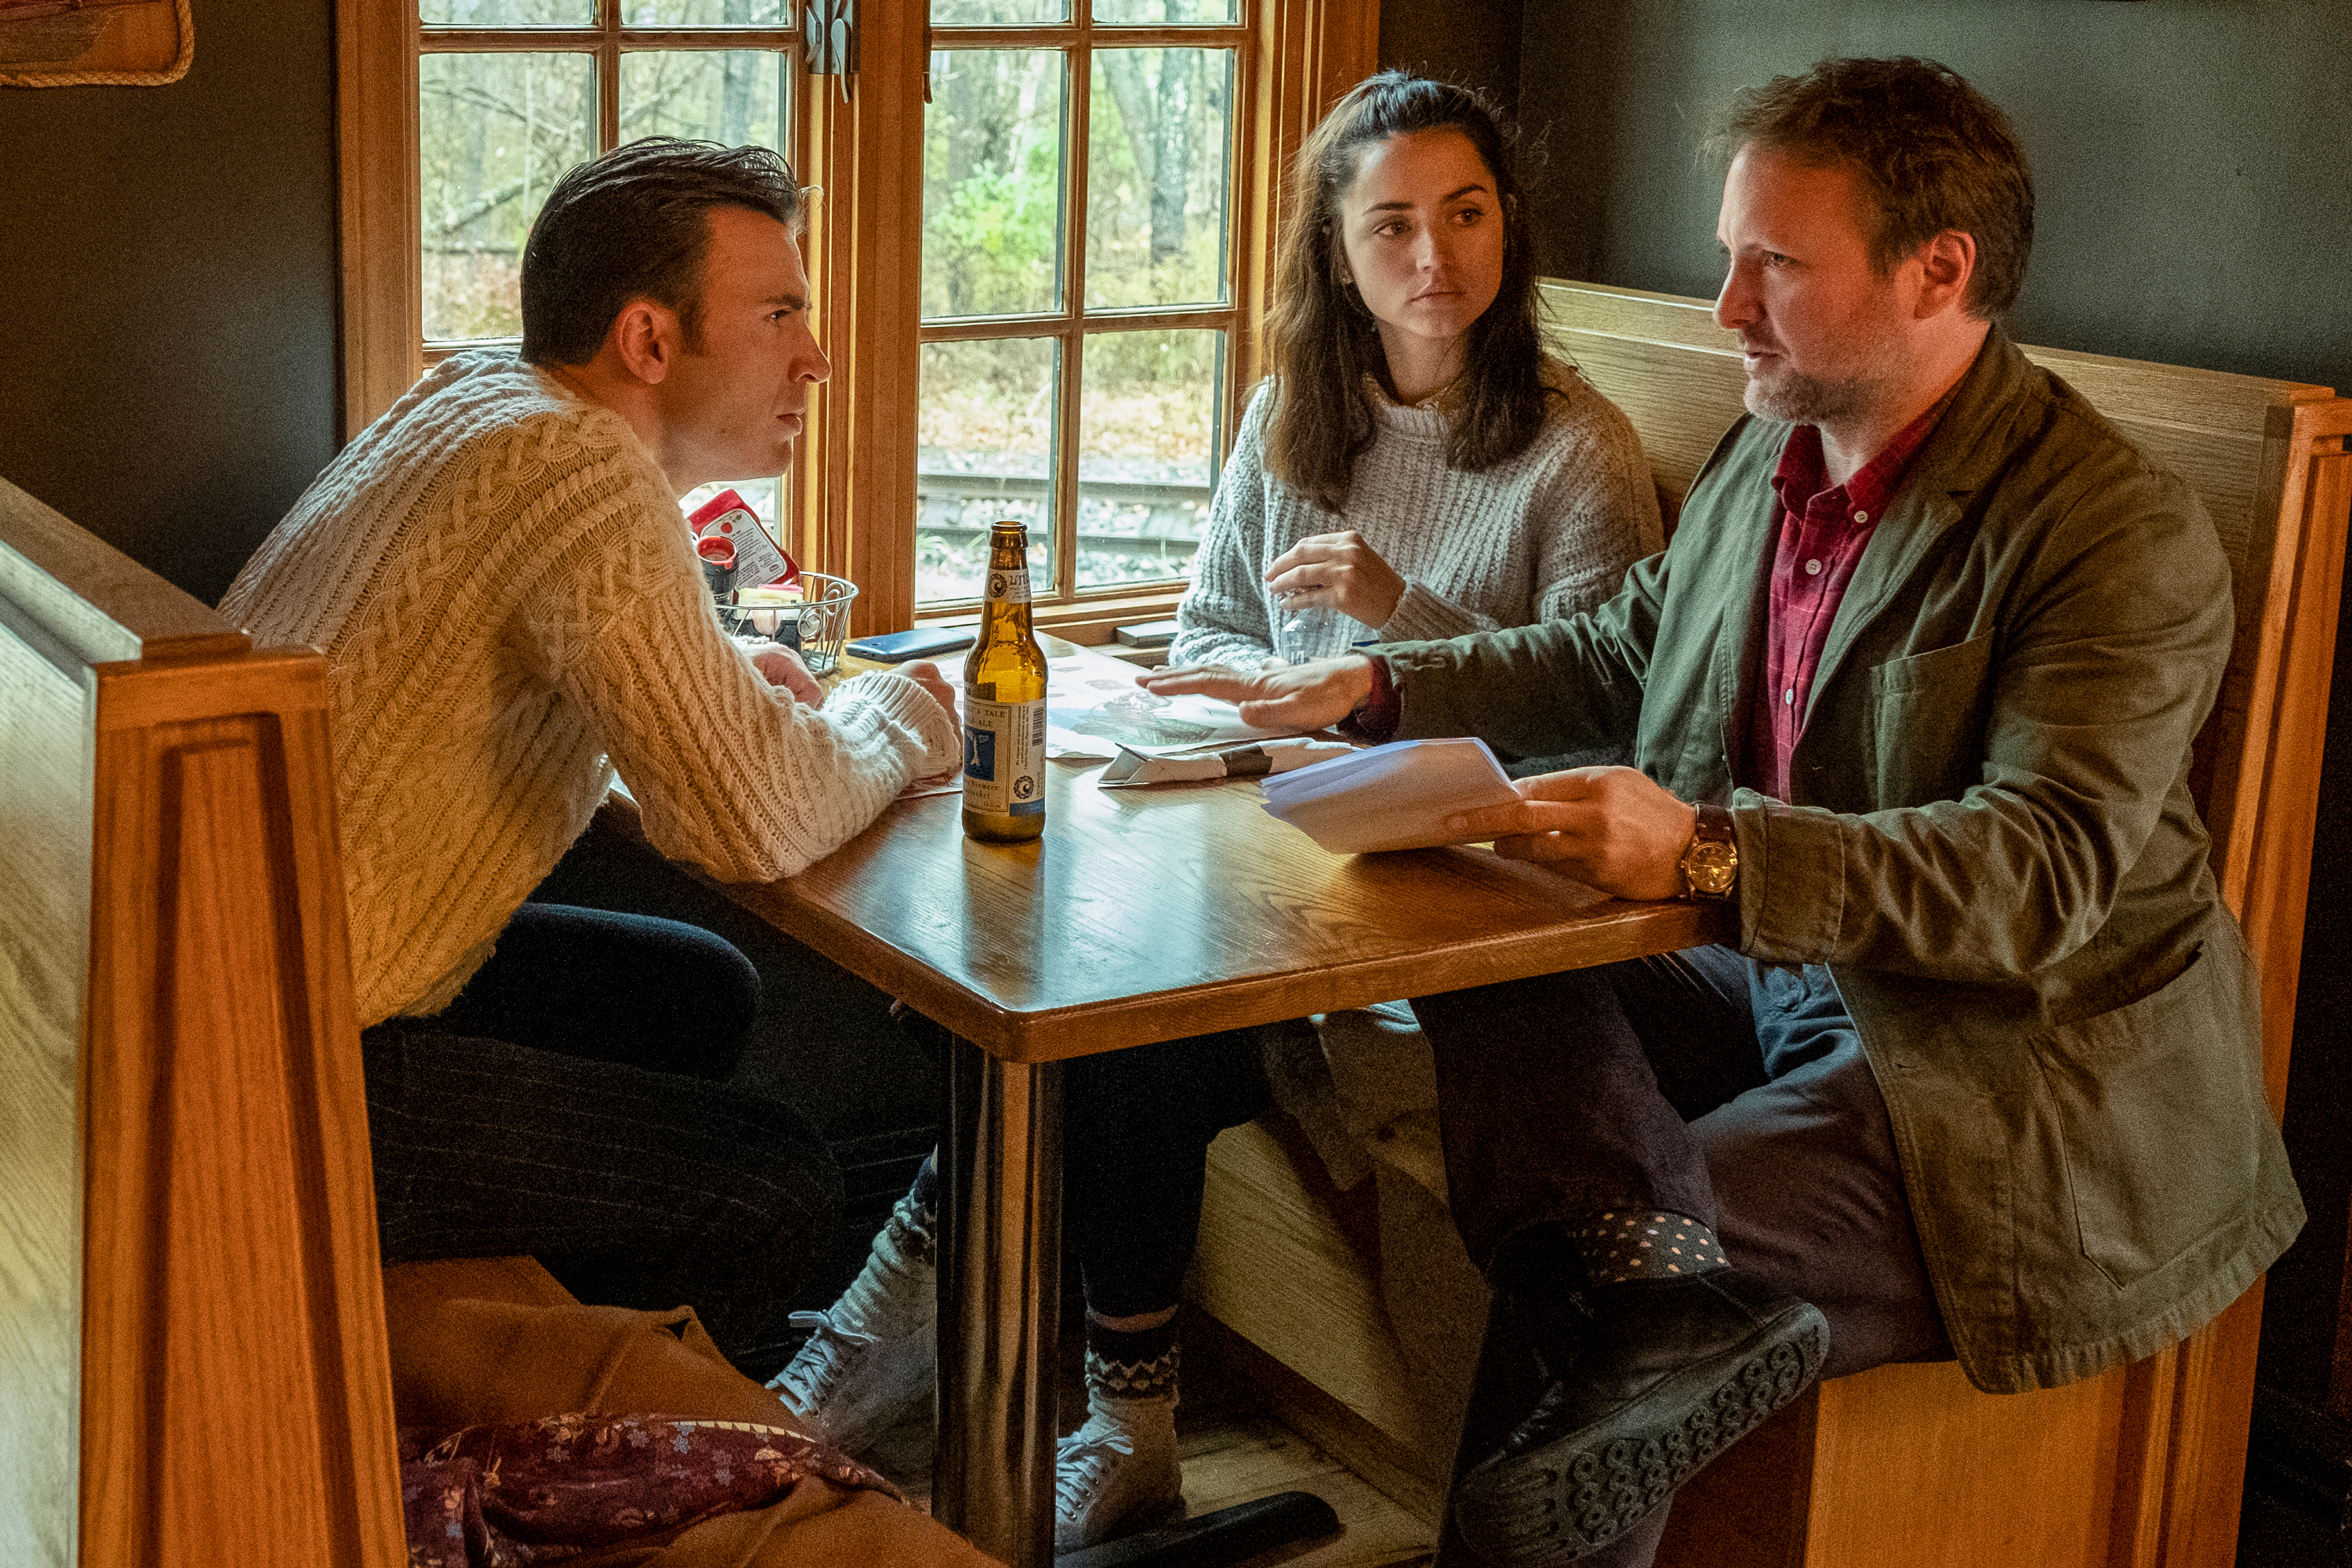 """Chris Evans (left), Ana de Armas (center) and director Rian Johnson on the set of """"Knives Out."""""""